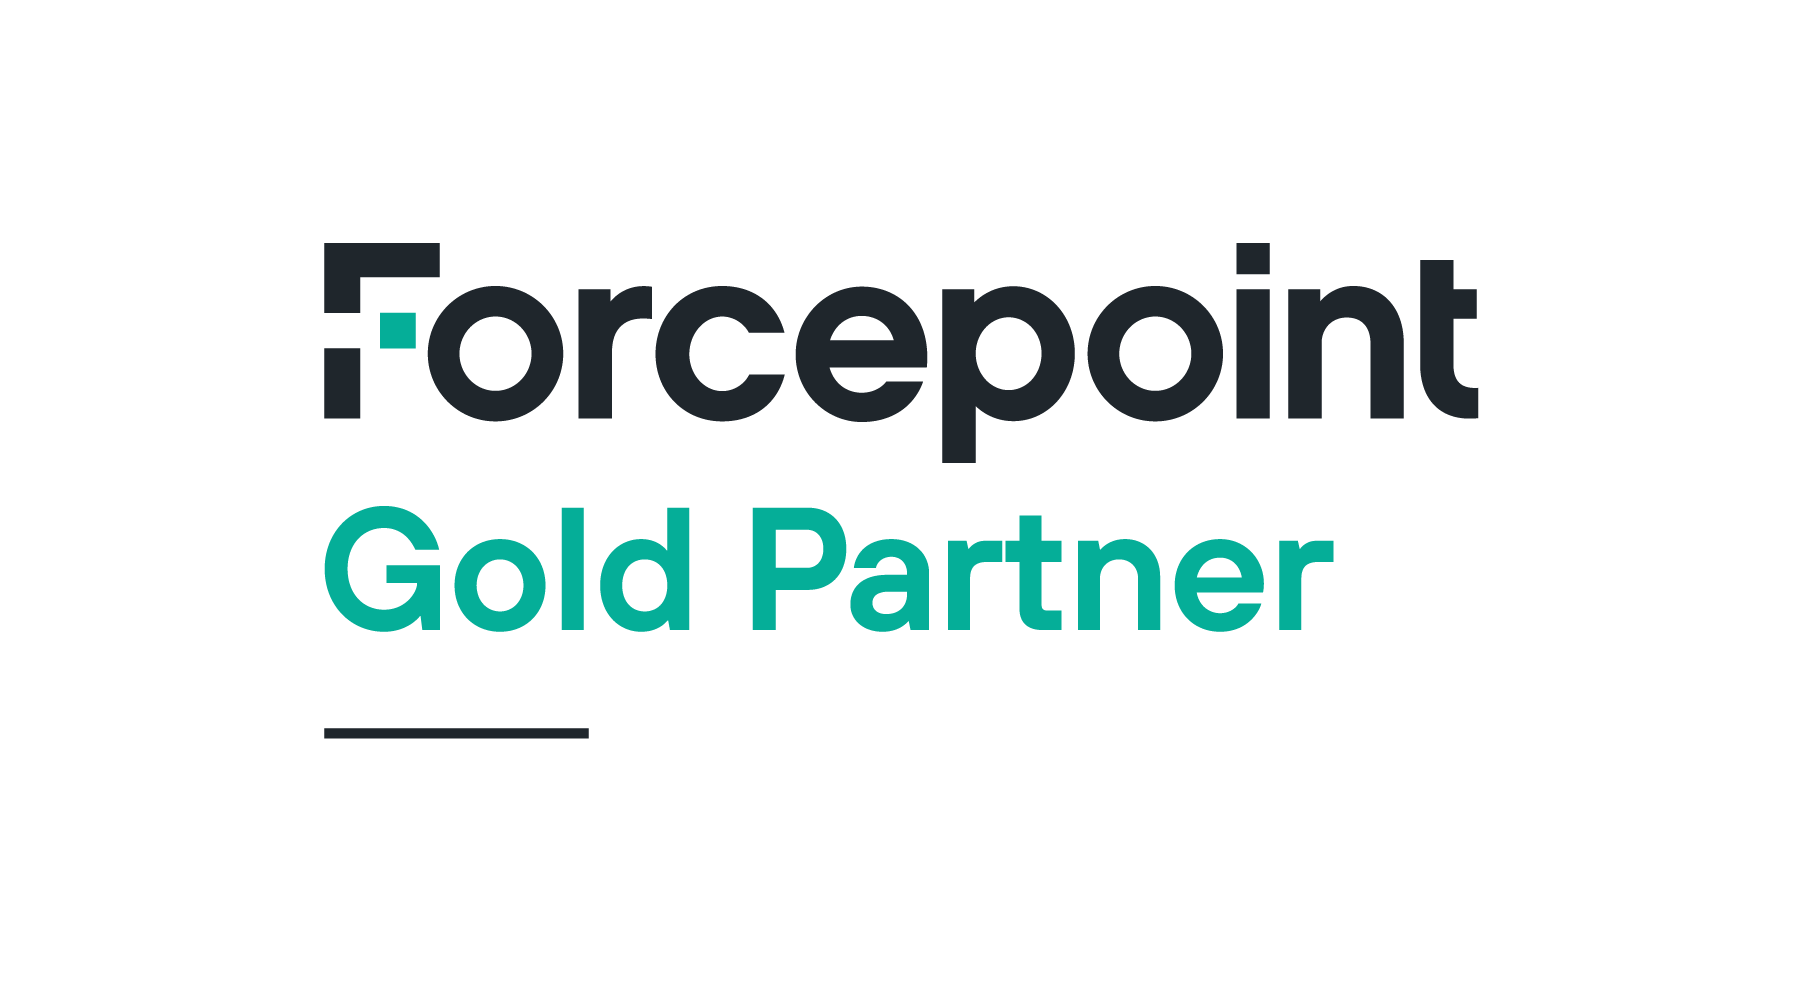 Forcepoint Gold Partner Logo-Primary